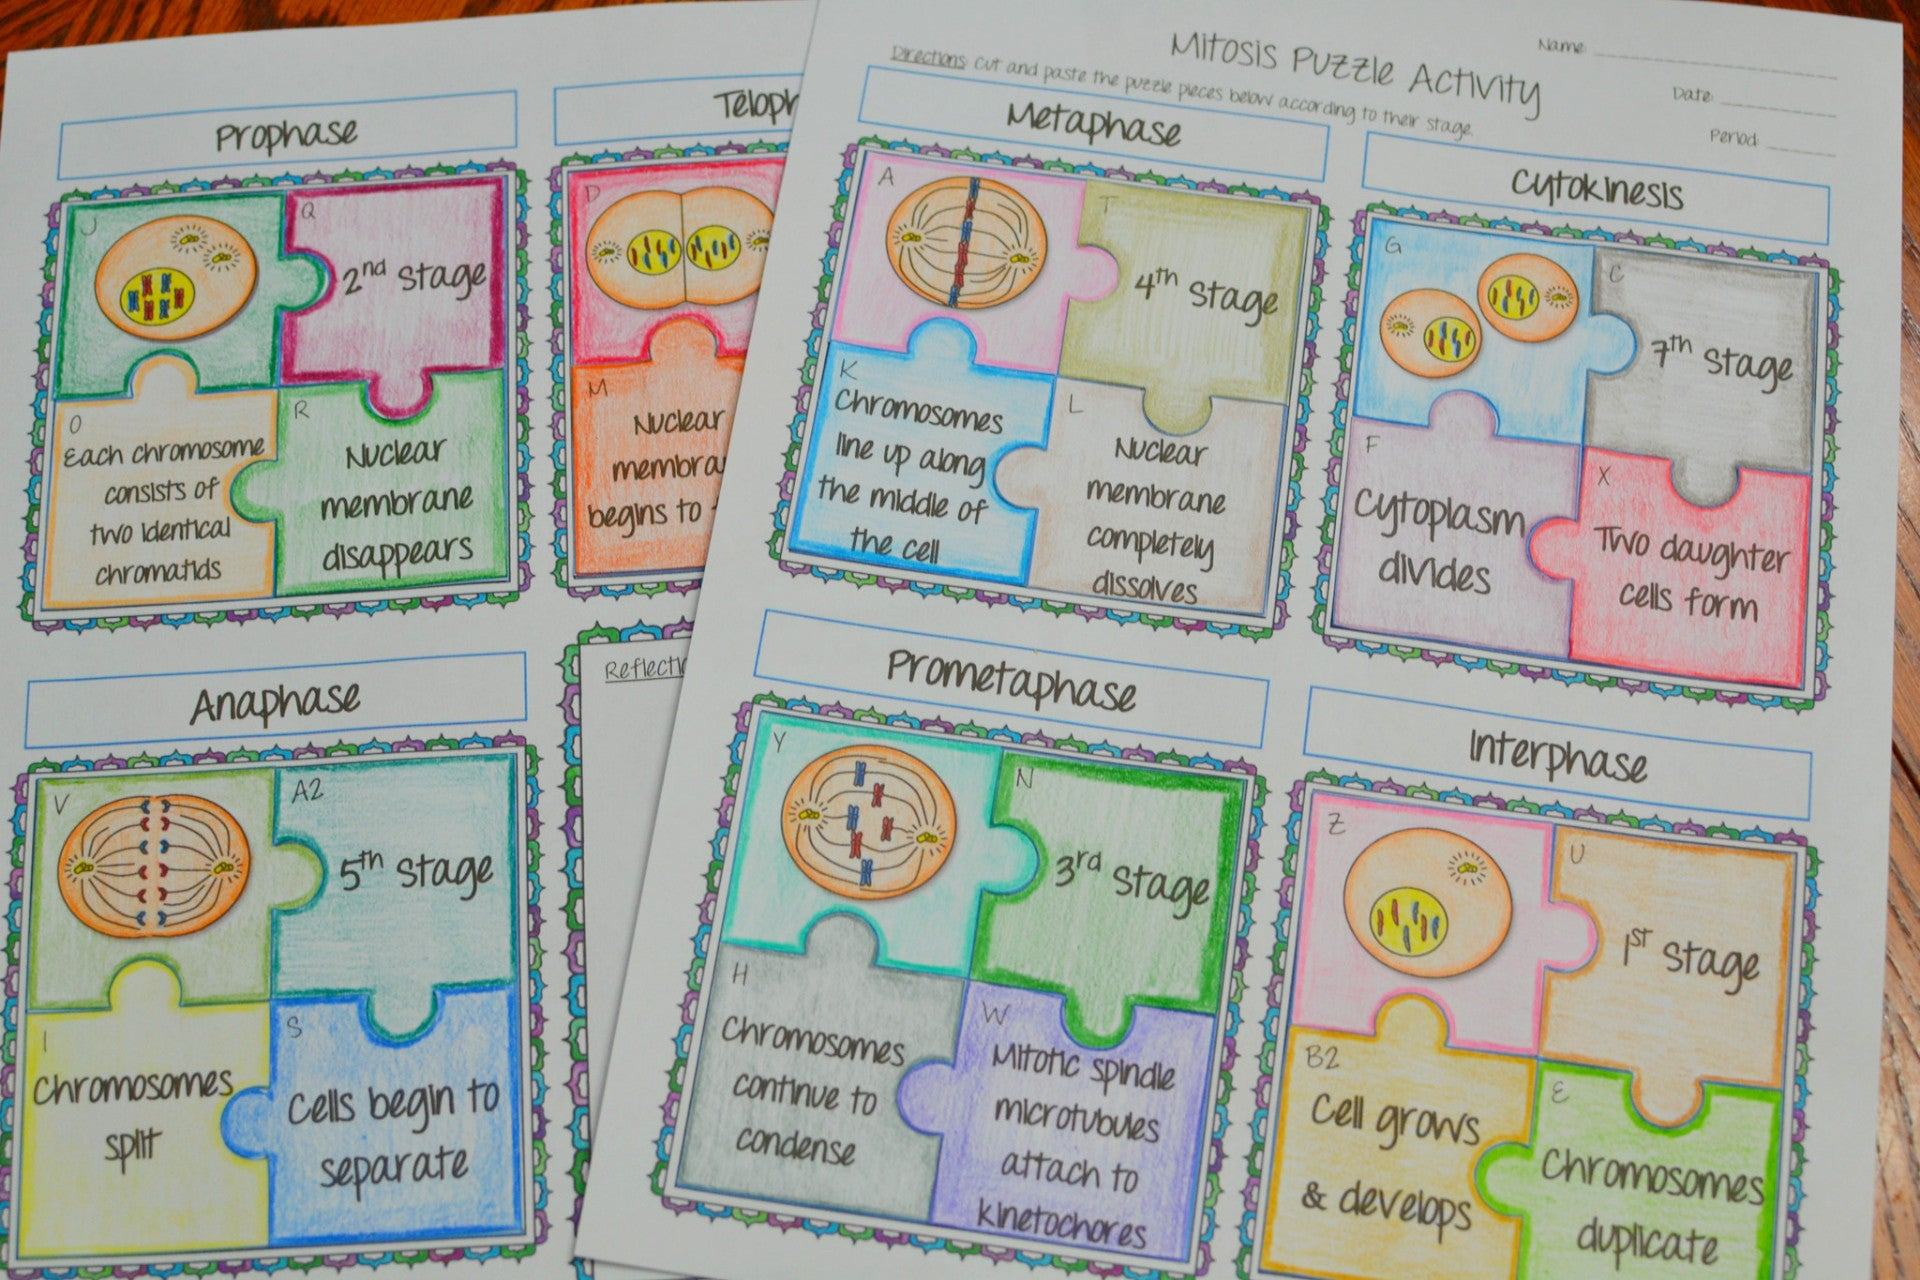 Mitosis Puzzle Activity - Math in Demand